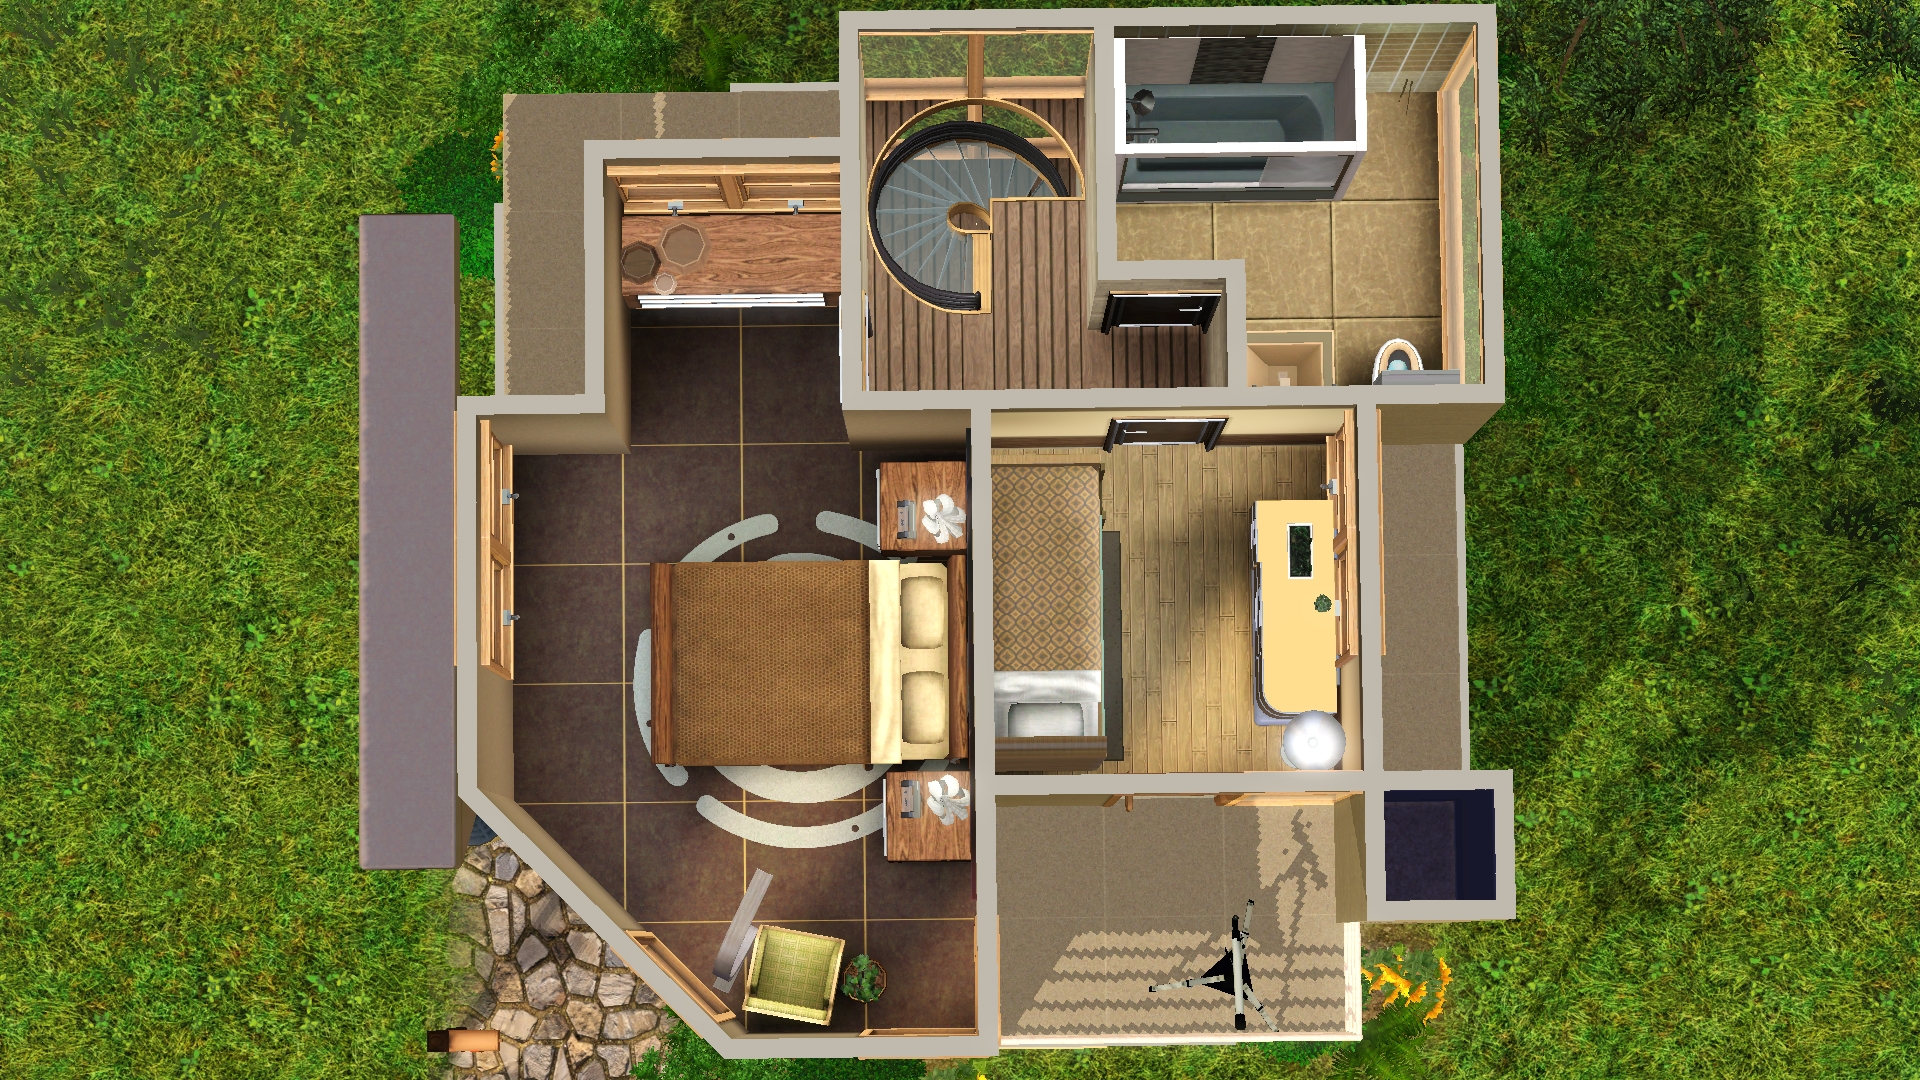 Tiny house plans for a family of 5 for House plans for family of 4